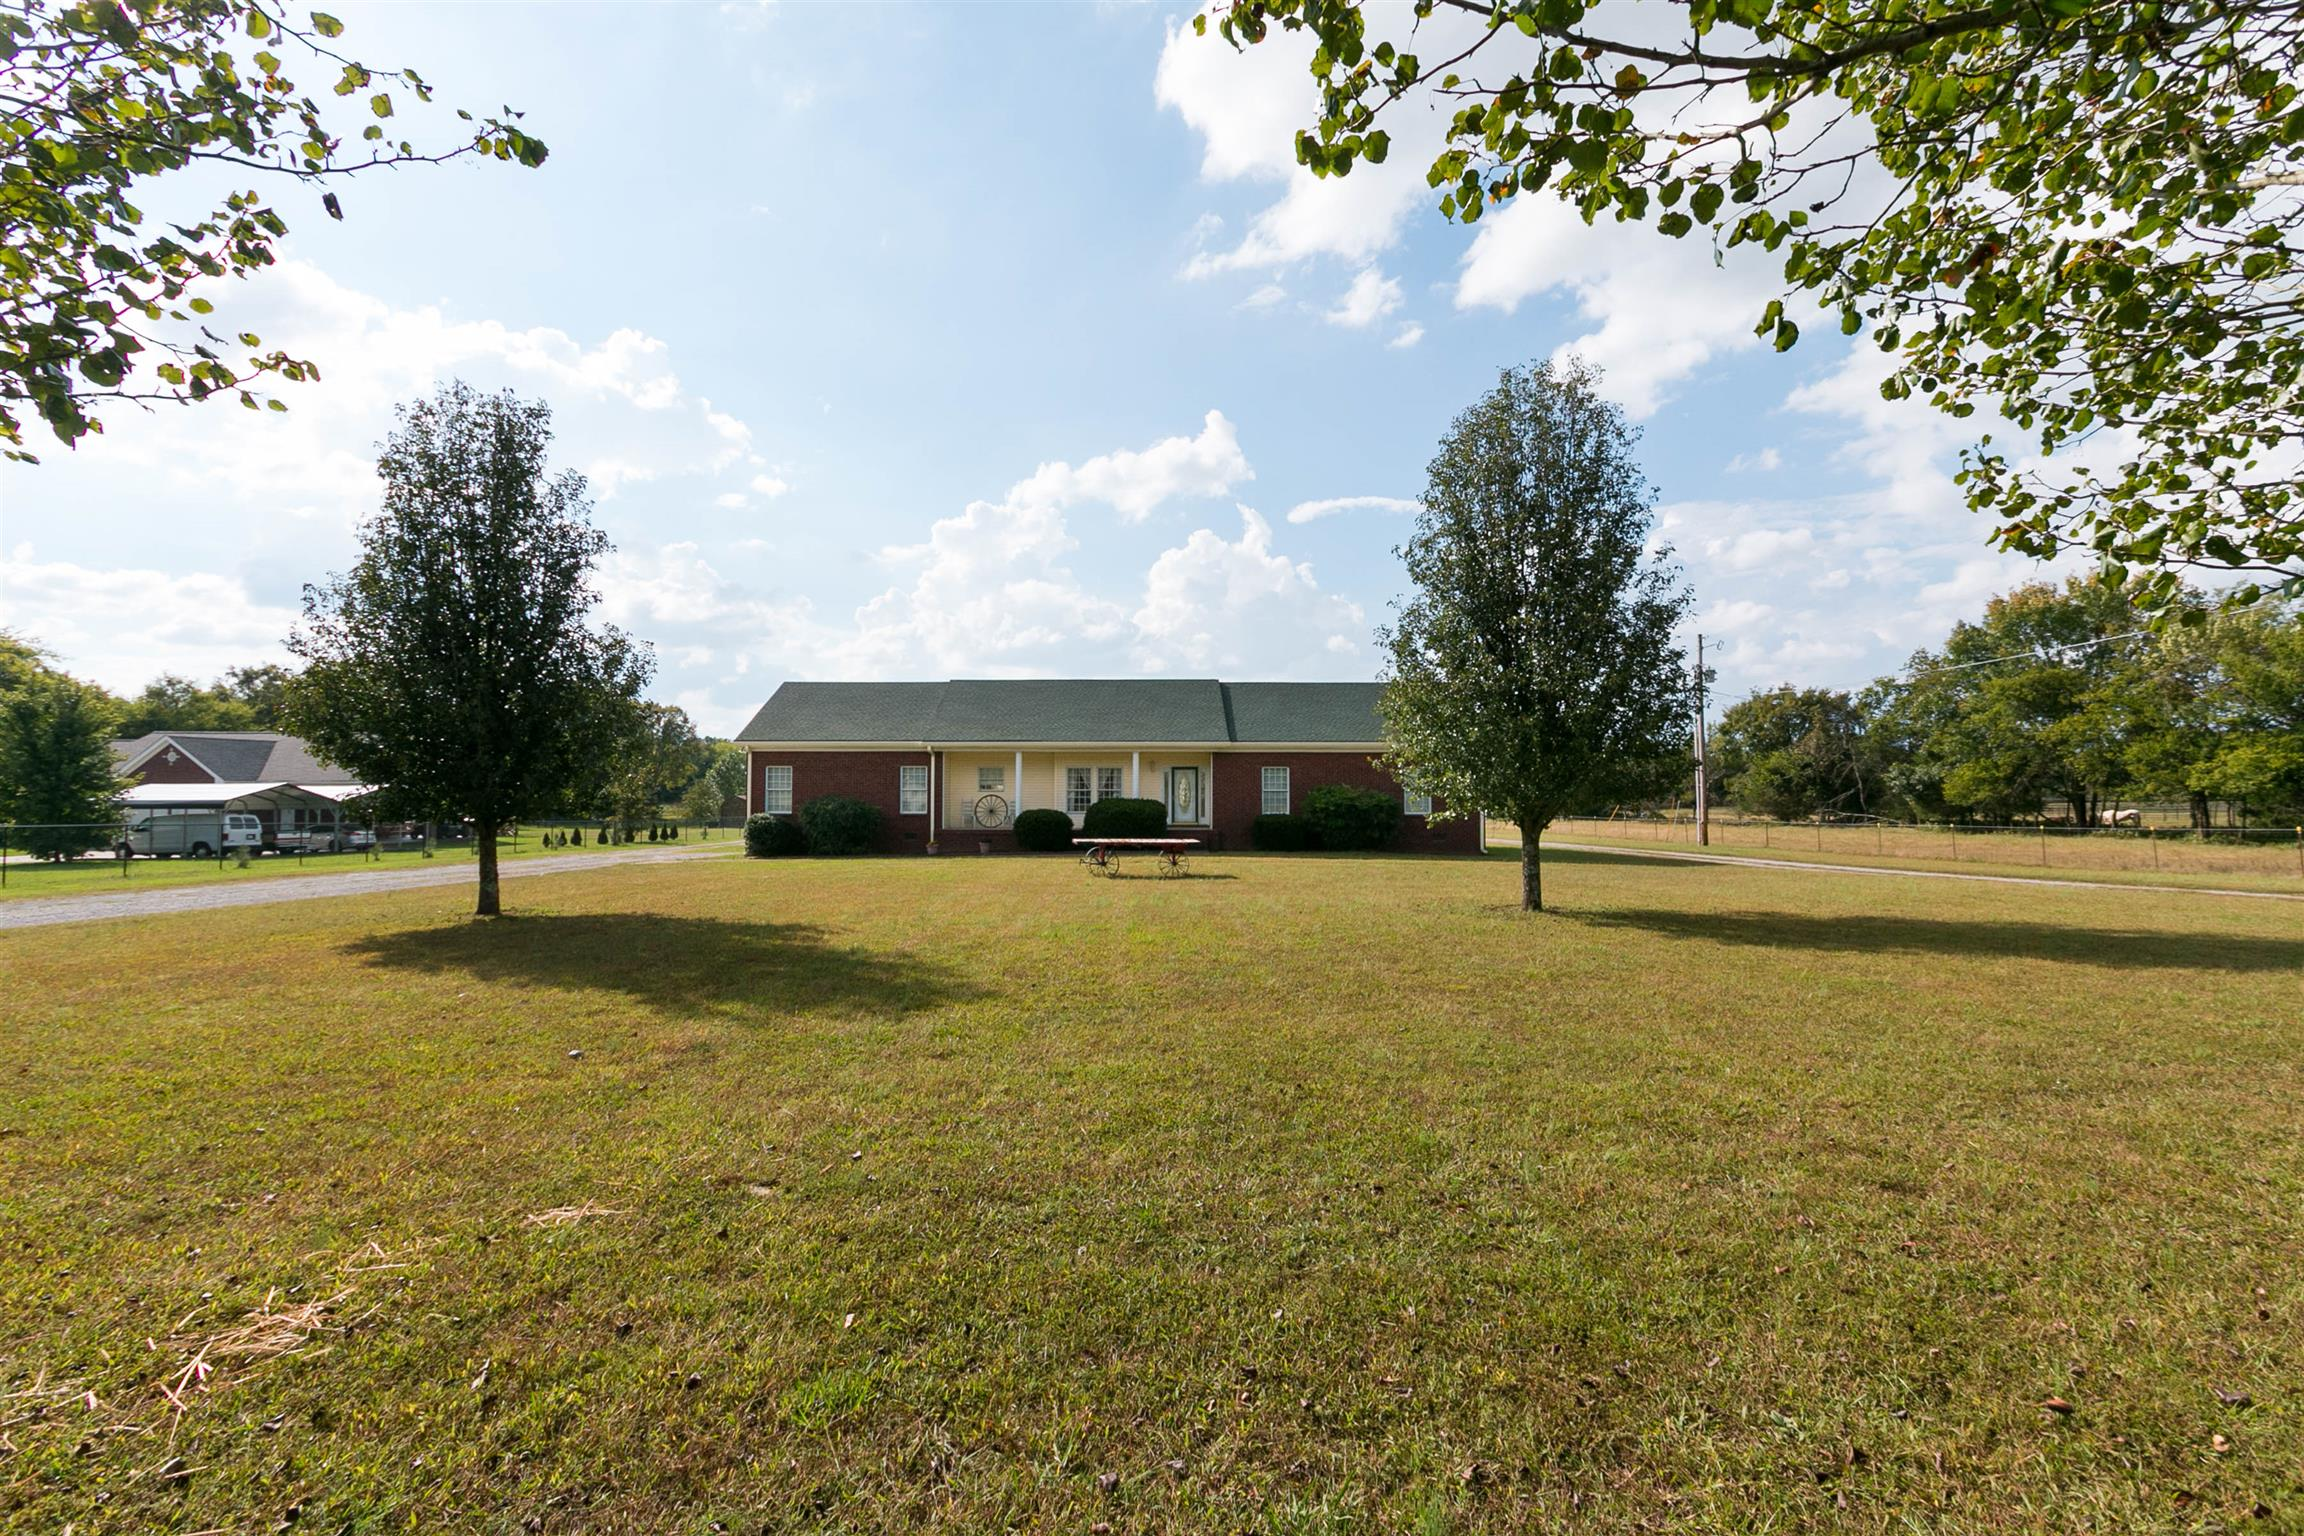 2301 Harkreader Rd, Mount Juliet, TN 37122 - Mount Juliet, TN real estate listing